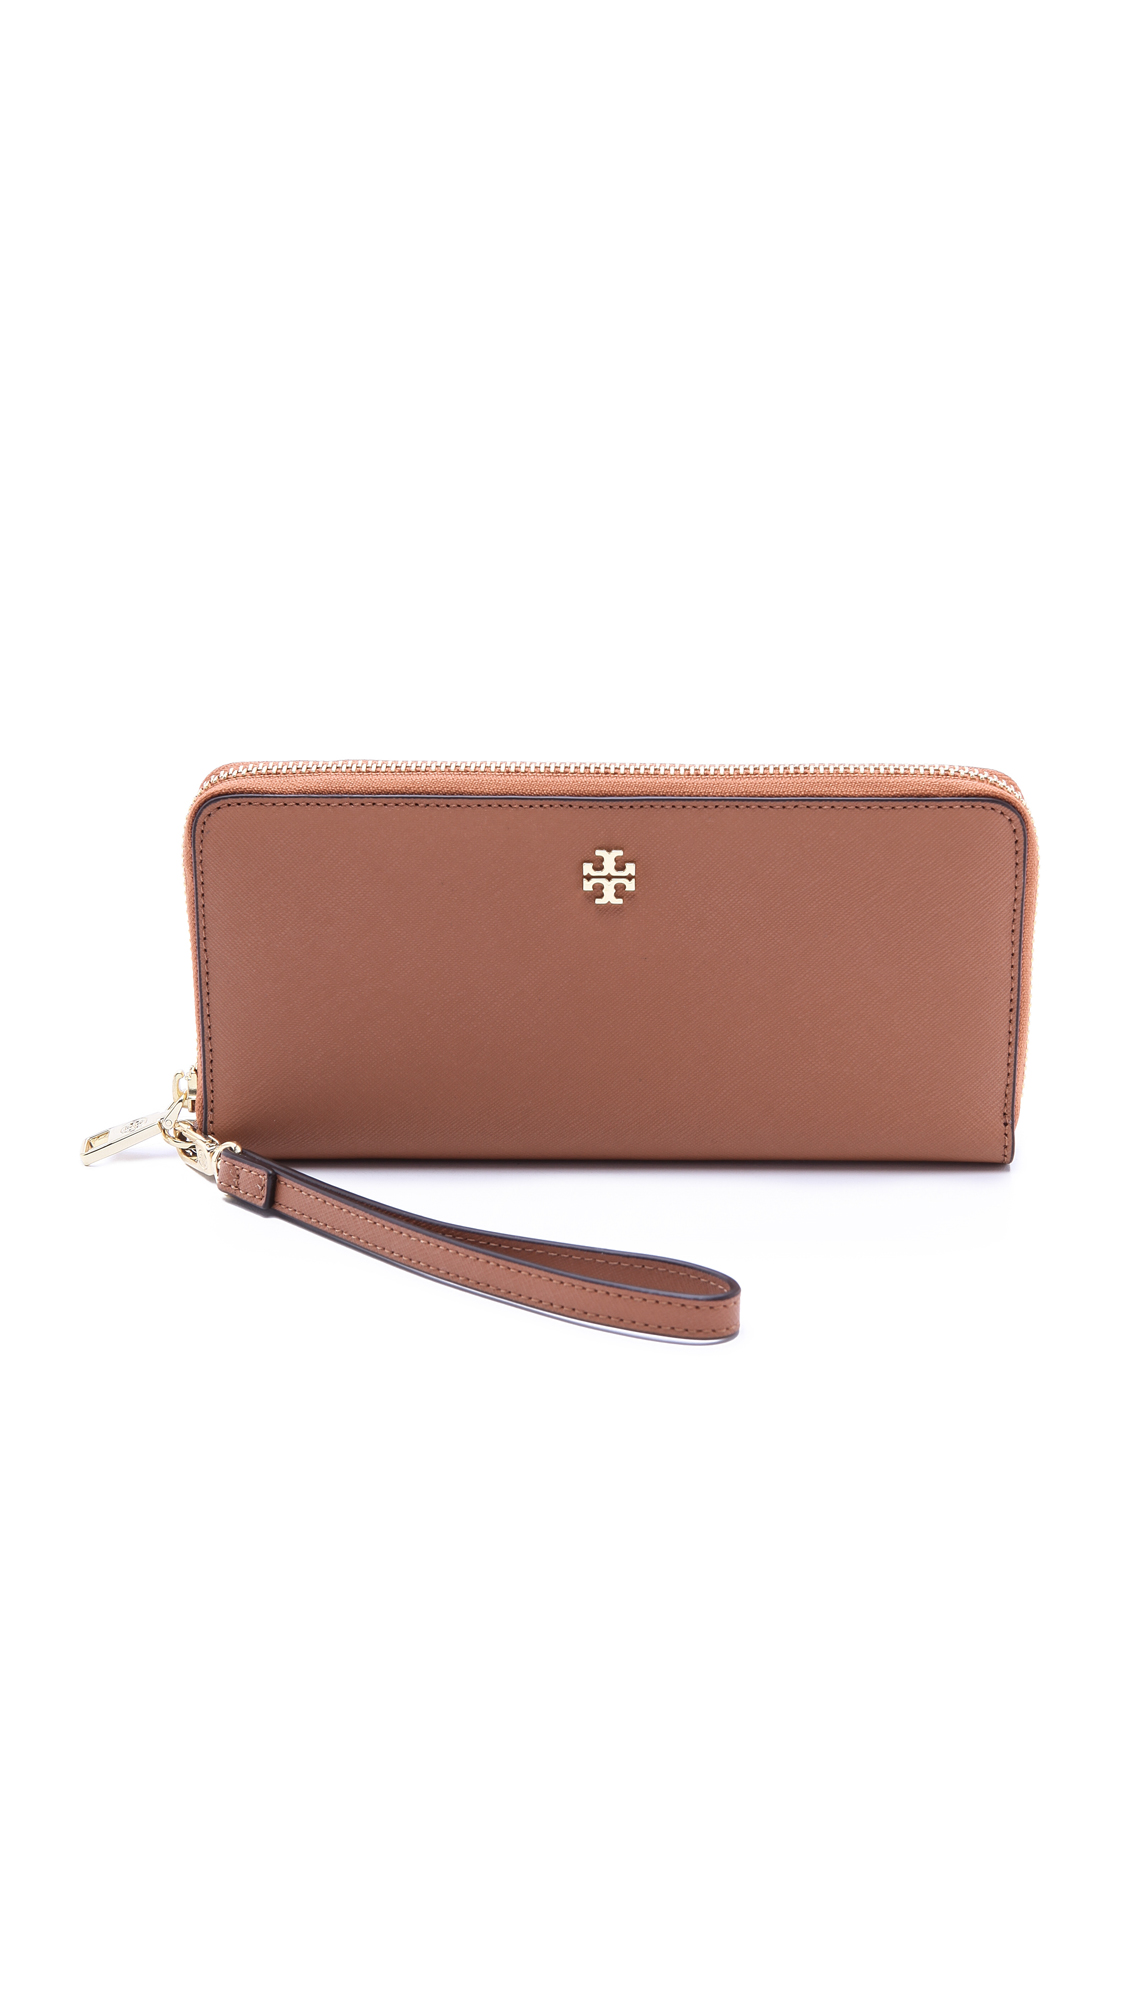 tory burch female tory burch york zip continental wallet luggage